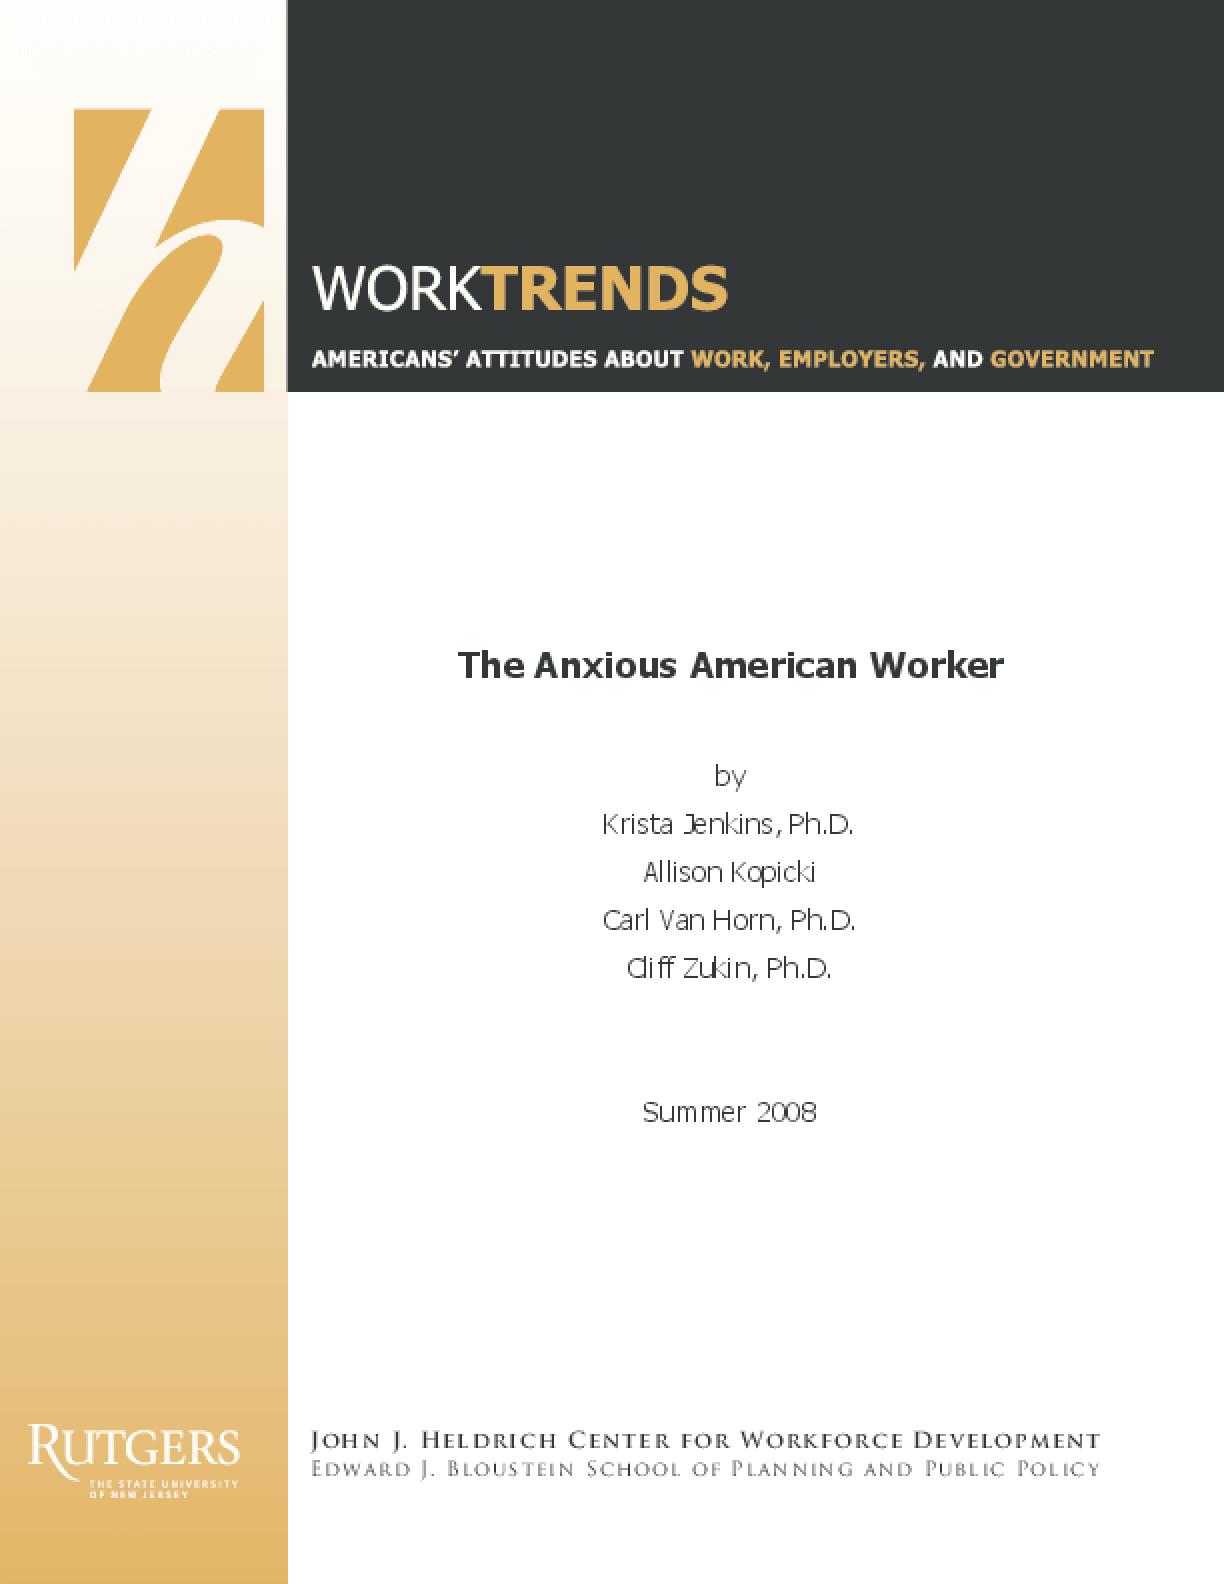 The Anxious American Worker: Work Trends Survey